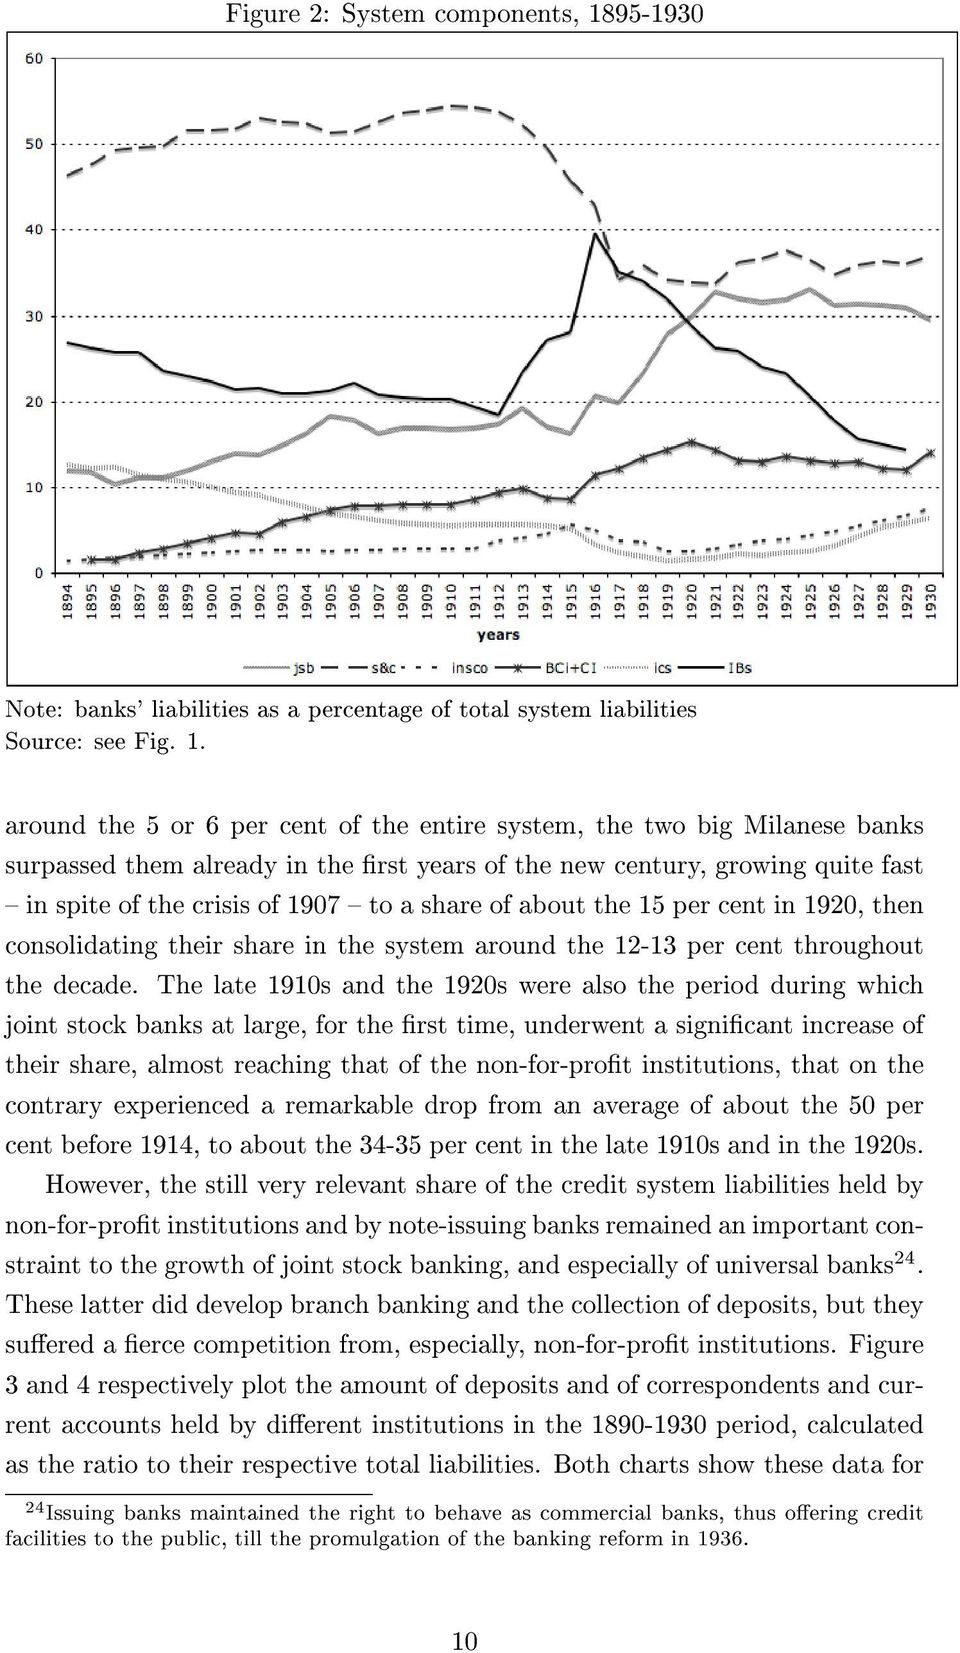 around the 5 or 6 per cent of the entire system, the two big Milanese banks surpassed them already in the rst years of the new century, growing quite fast in spite of the crisis of 1907 to a share of